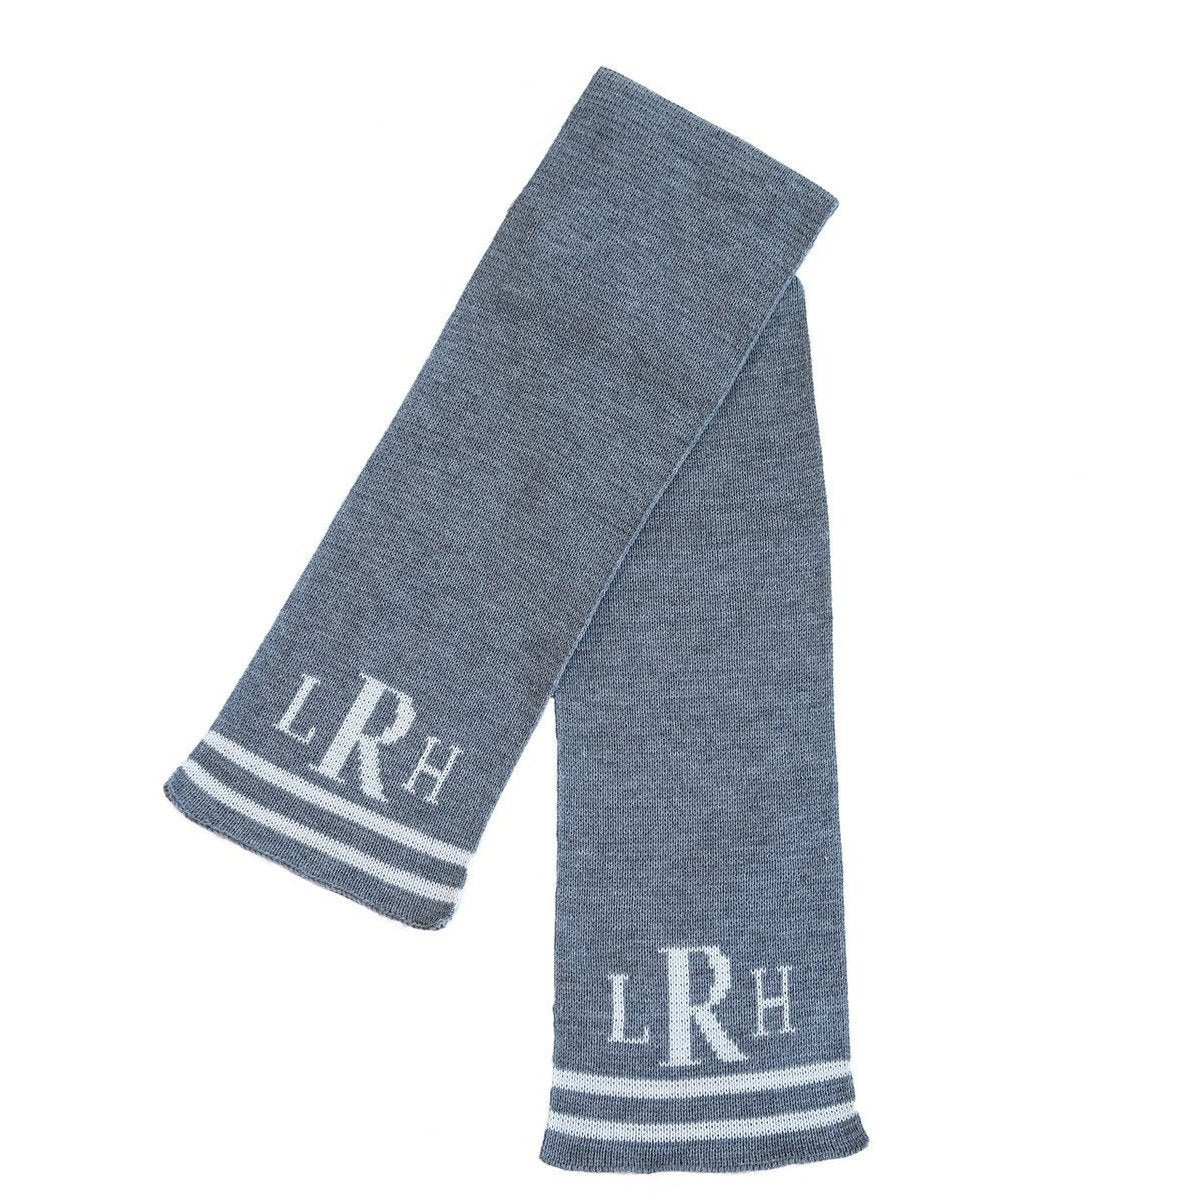 Classic Monogram & Stripes Personalized Knit Scarf-Scarves-Default-Jack and Jill Boutique